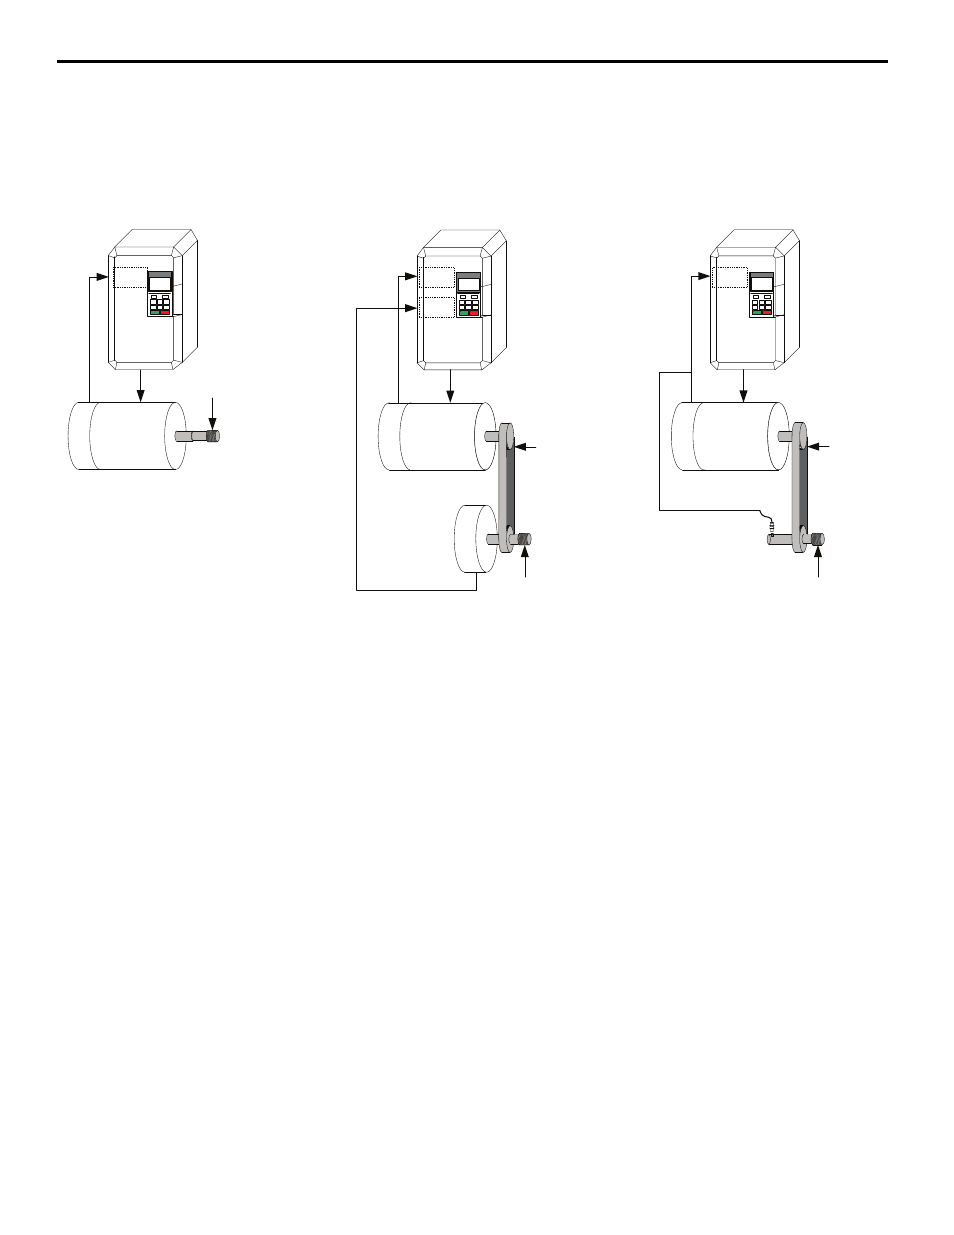 Application Configurations 2 Spindle Orientation Typical Yaskawa A1000 Wiring Diagram Background Image